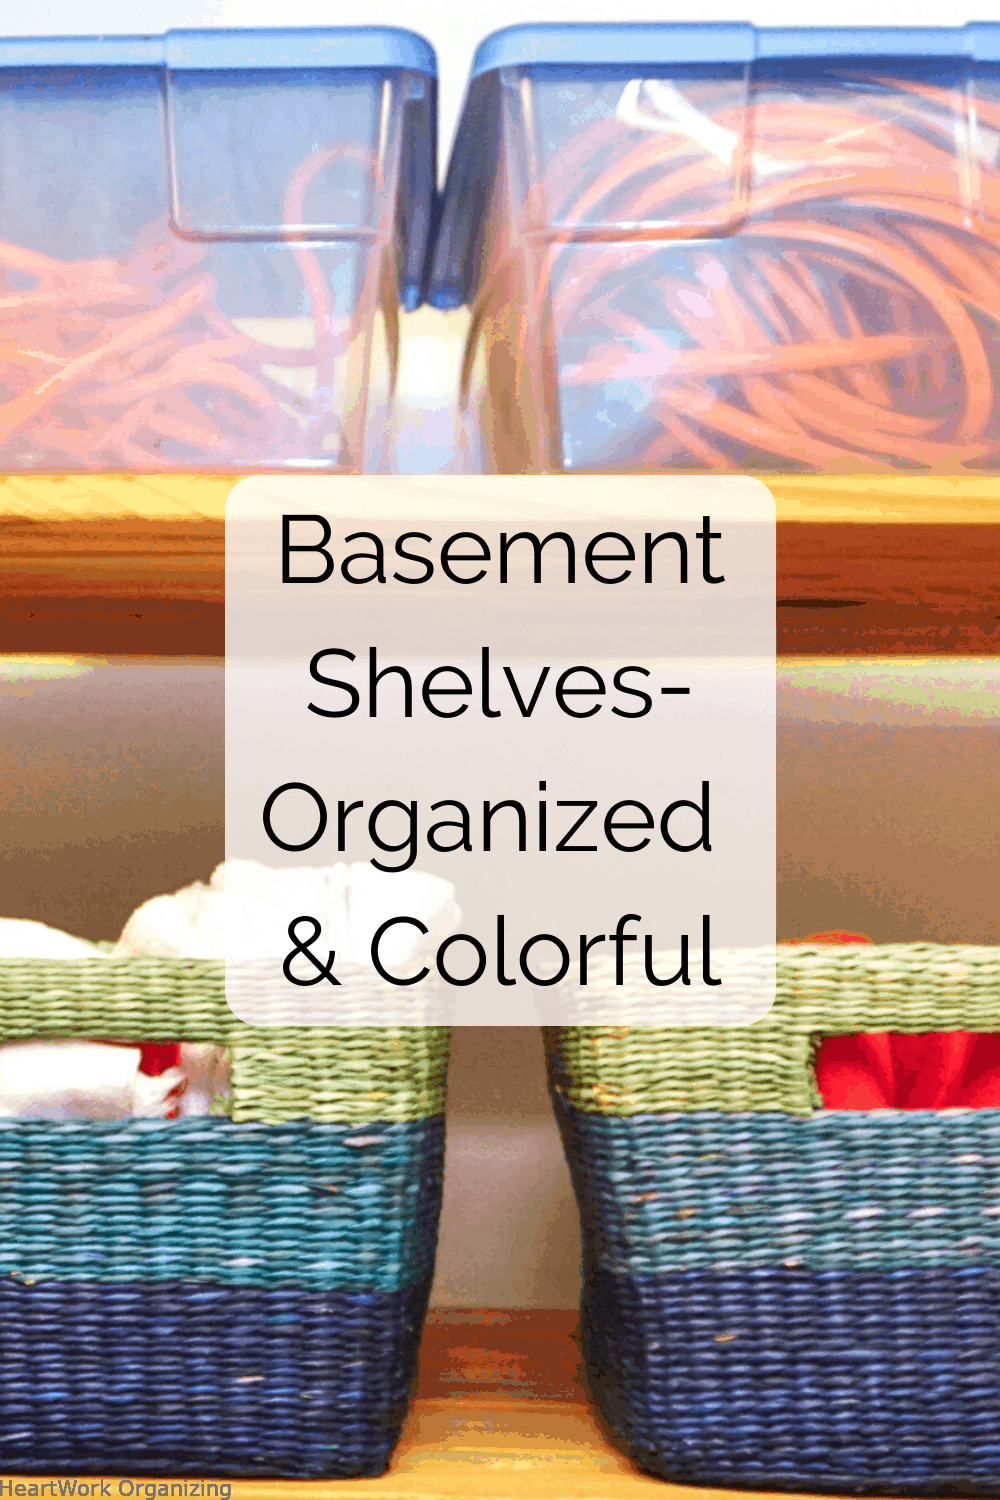 Basement Shelves Organized and Colorful